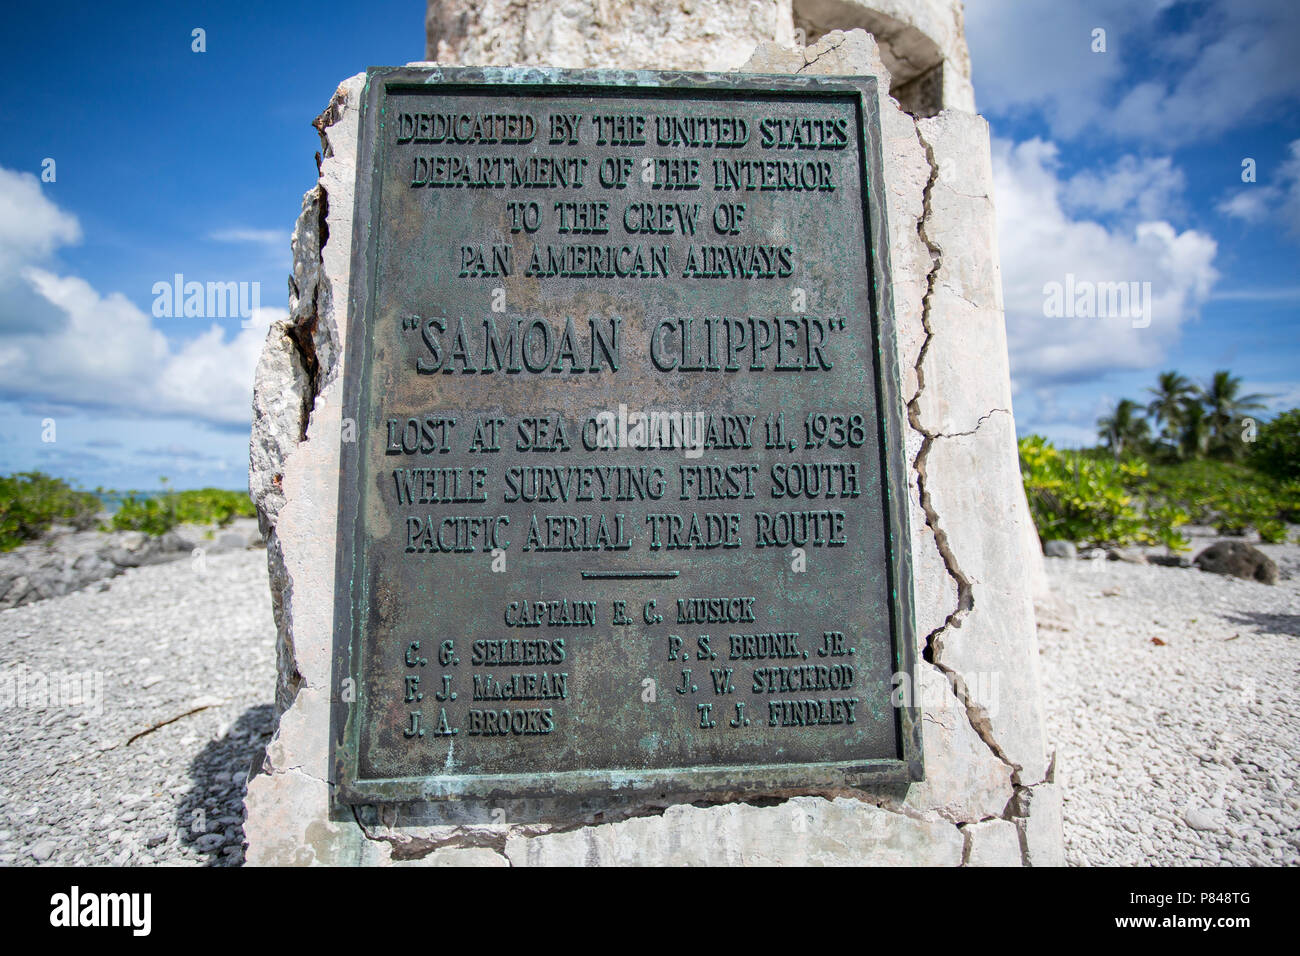 Memorial to the Pan American Airways crew of the Samoan Clipper, lost at sea while surveying the first South Pacific Aerial Trade Route. - Stock Image